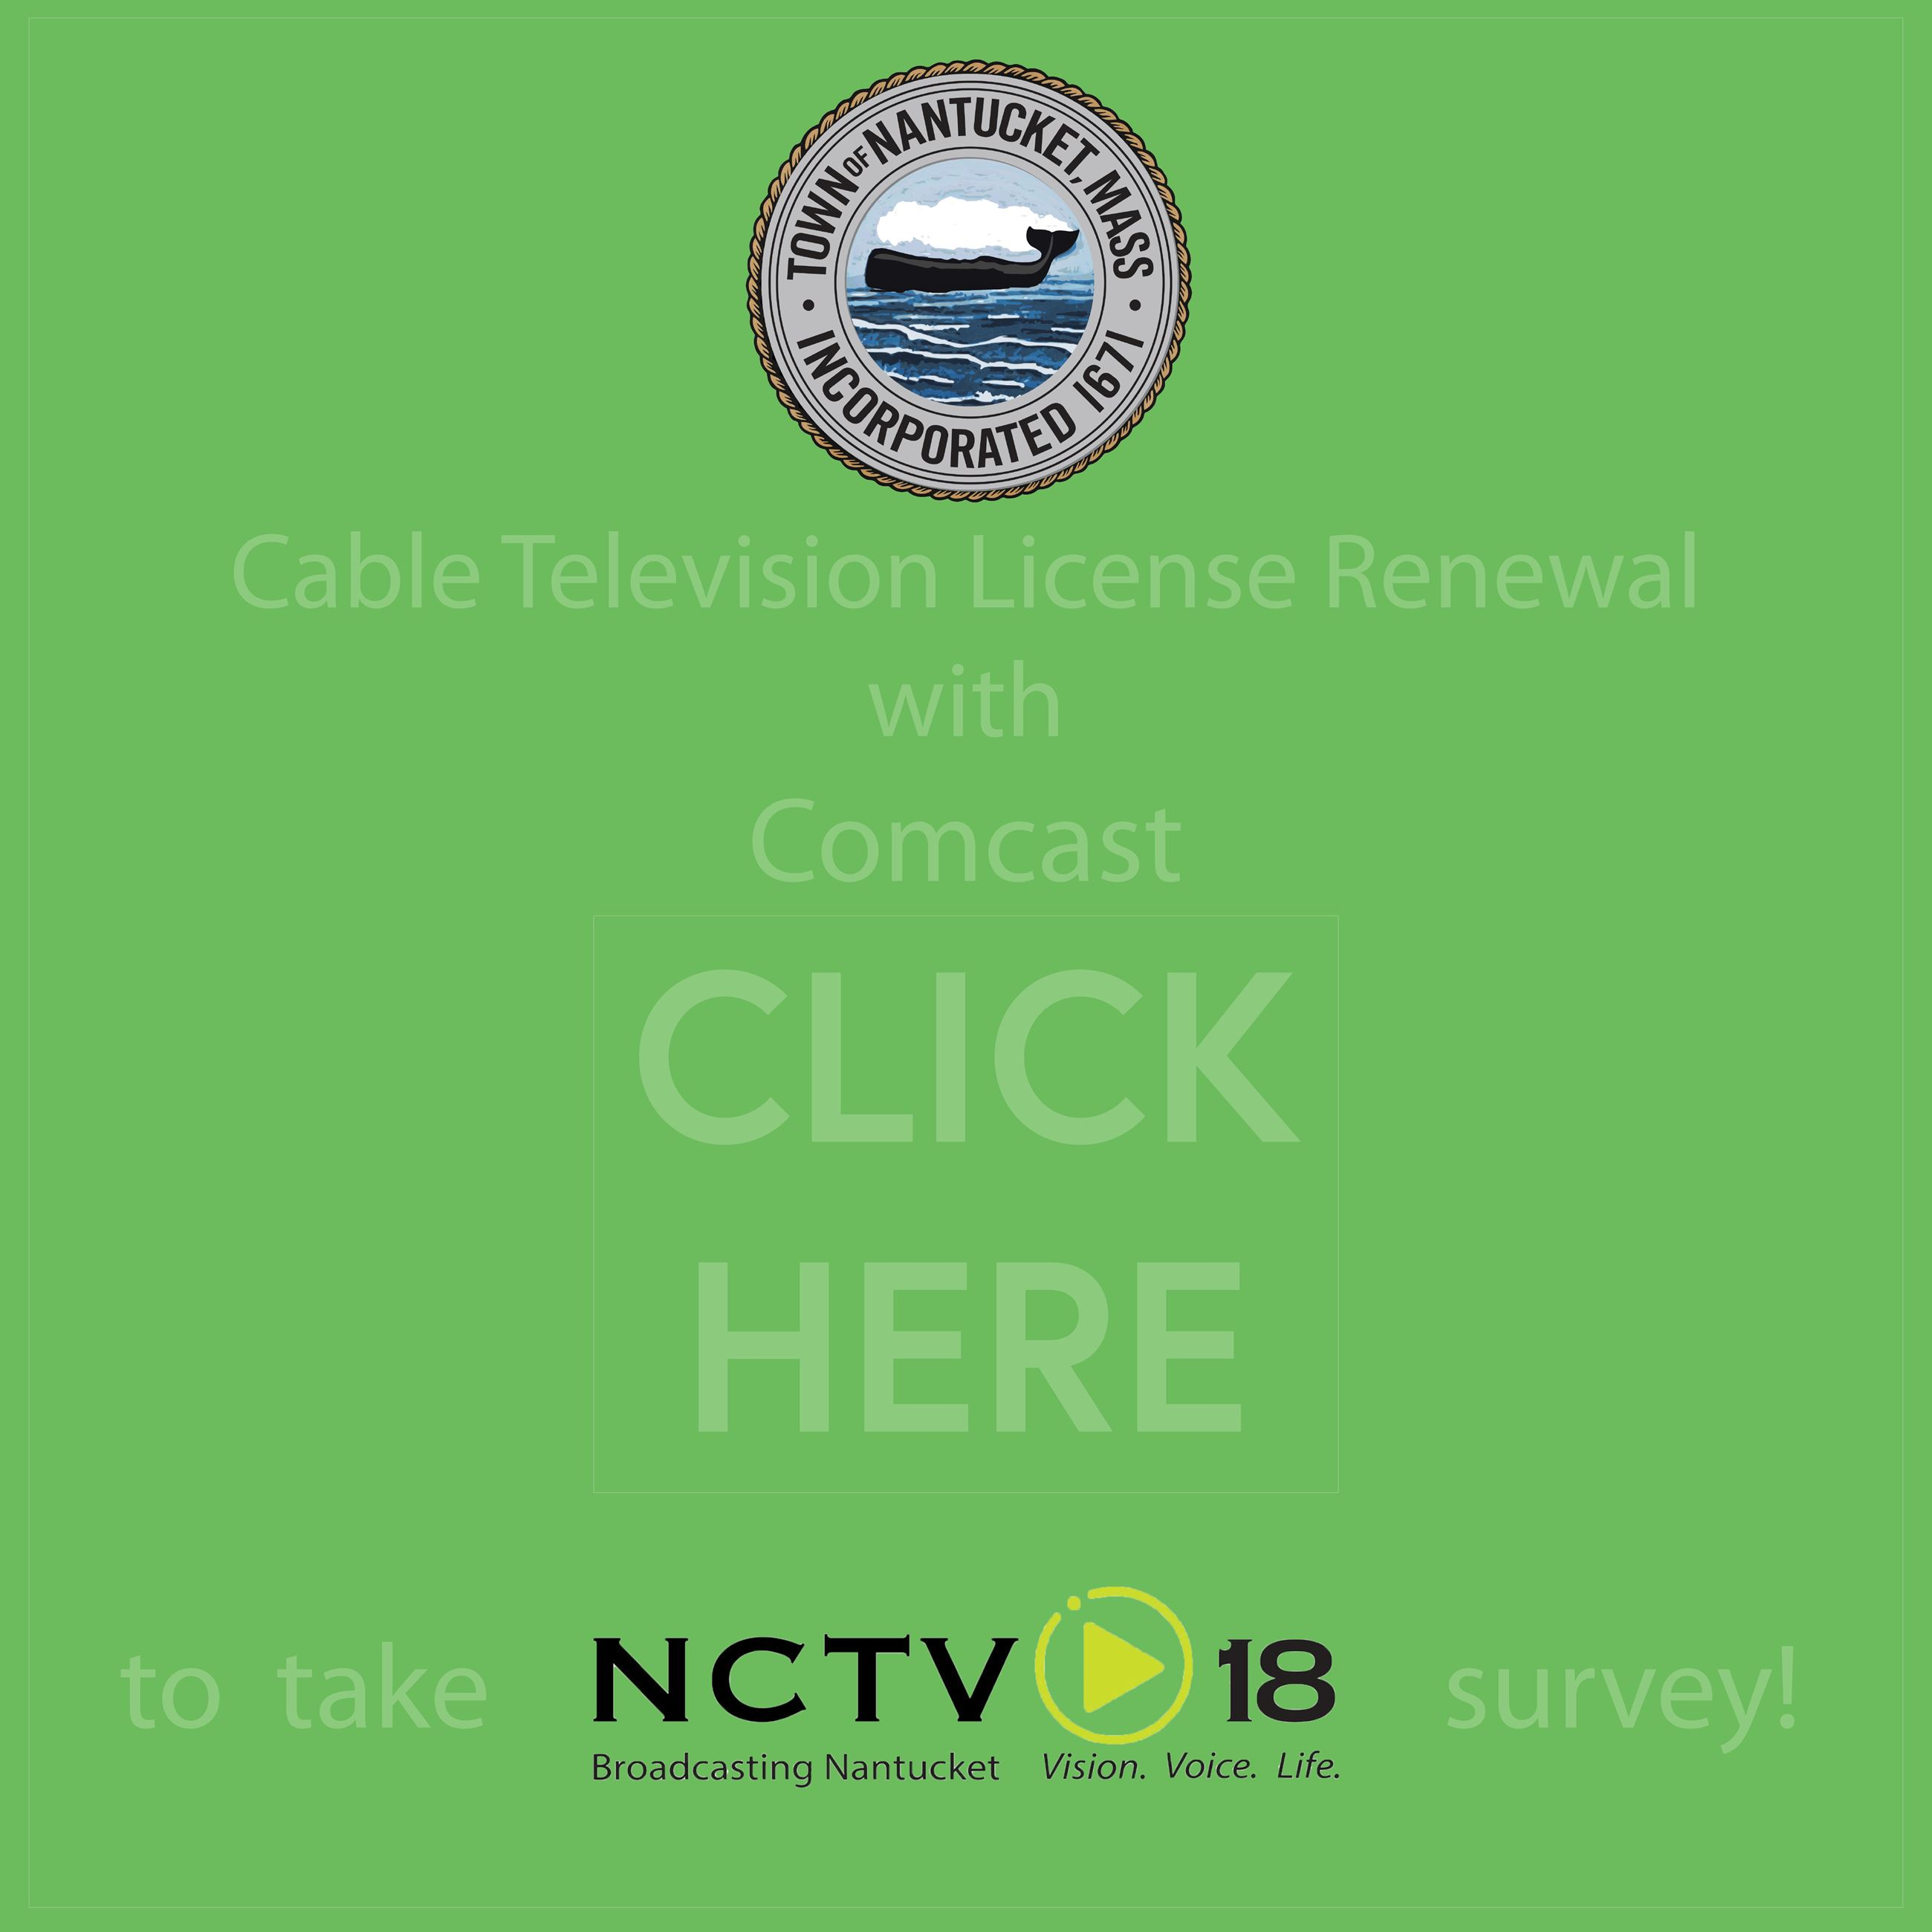 Cable Television License Renewal with Comcast